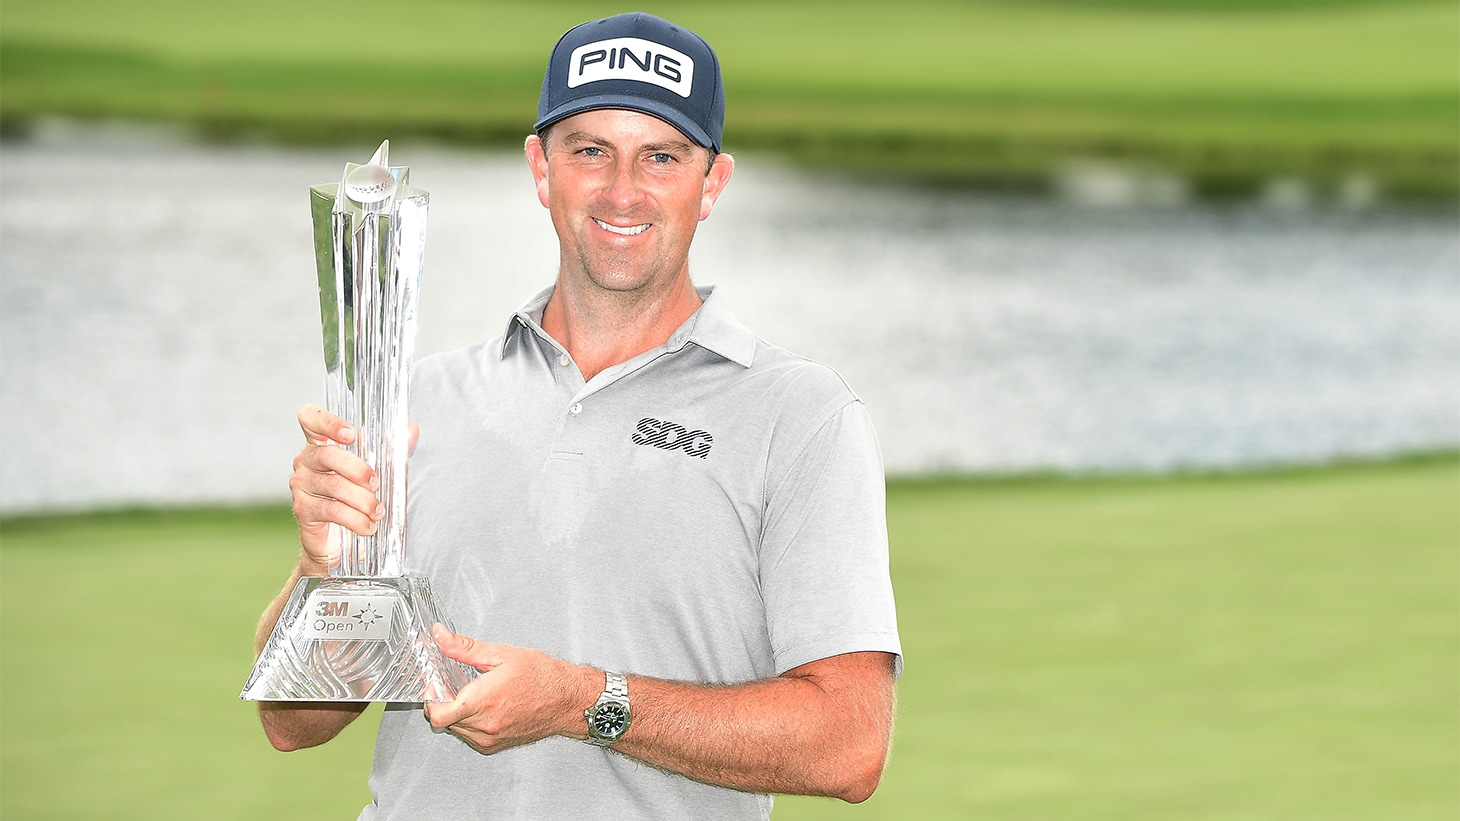 Michael Thompson earns his second career PGA TOUR...